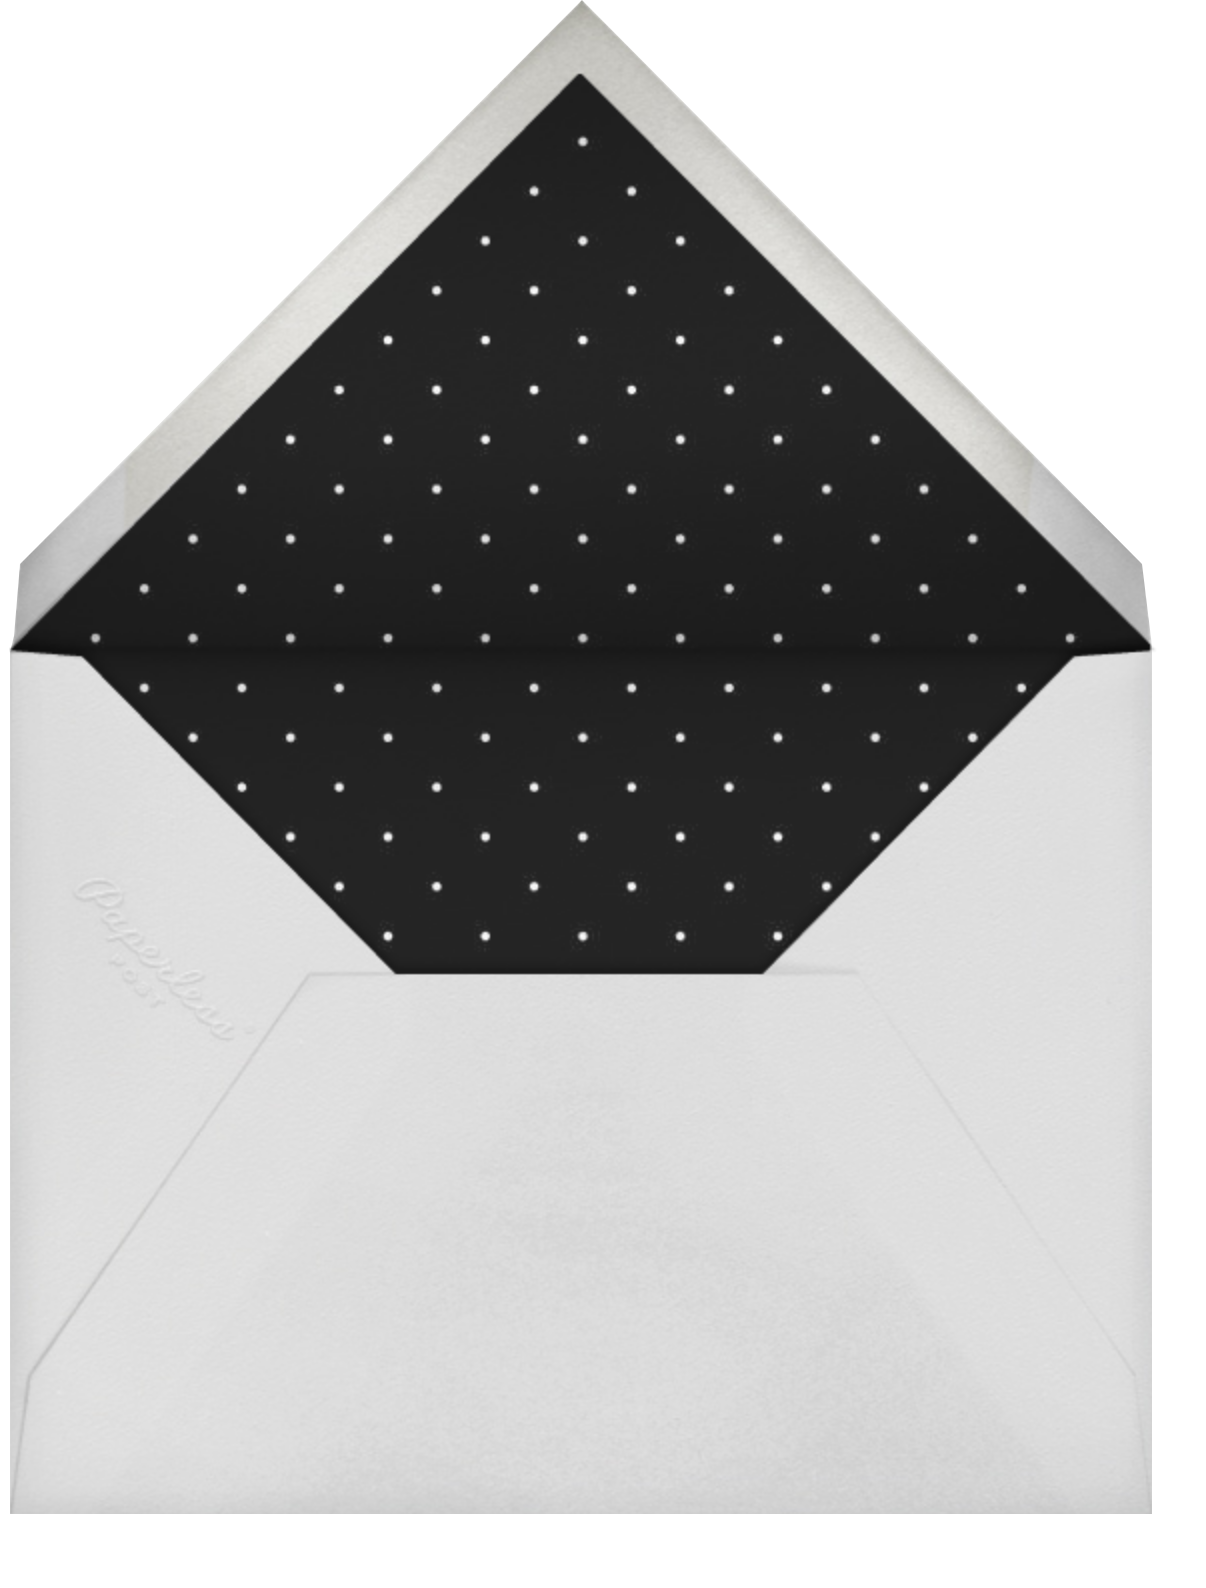 Editorial II - White/Gold  - Paperless Post - Cocktail party - envelope back